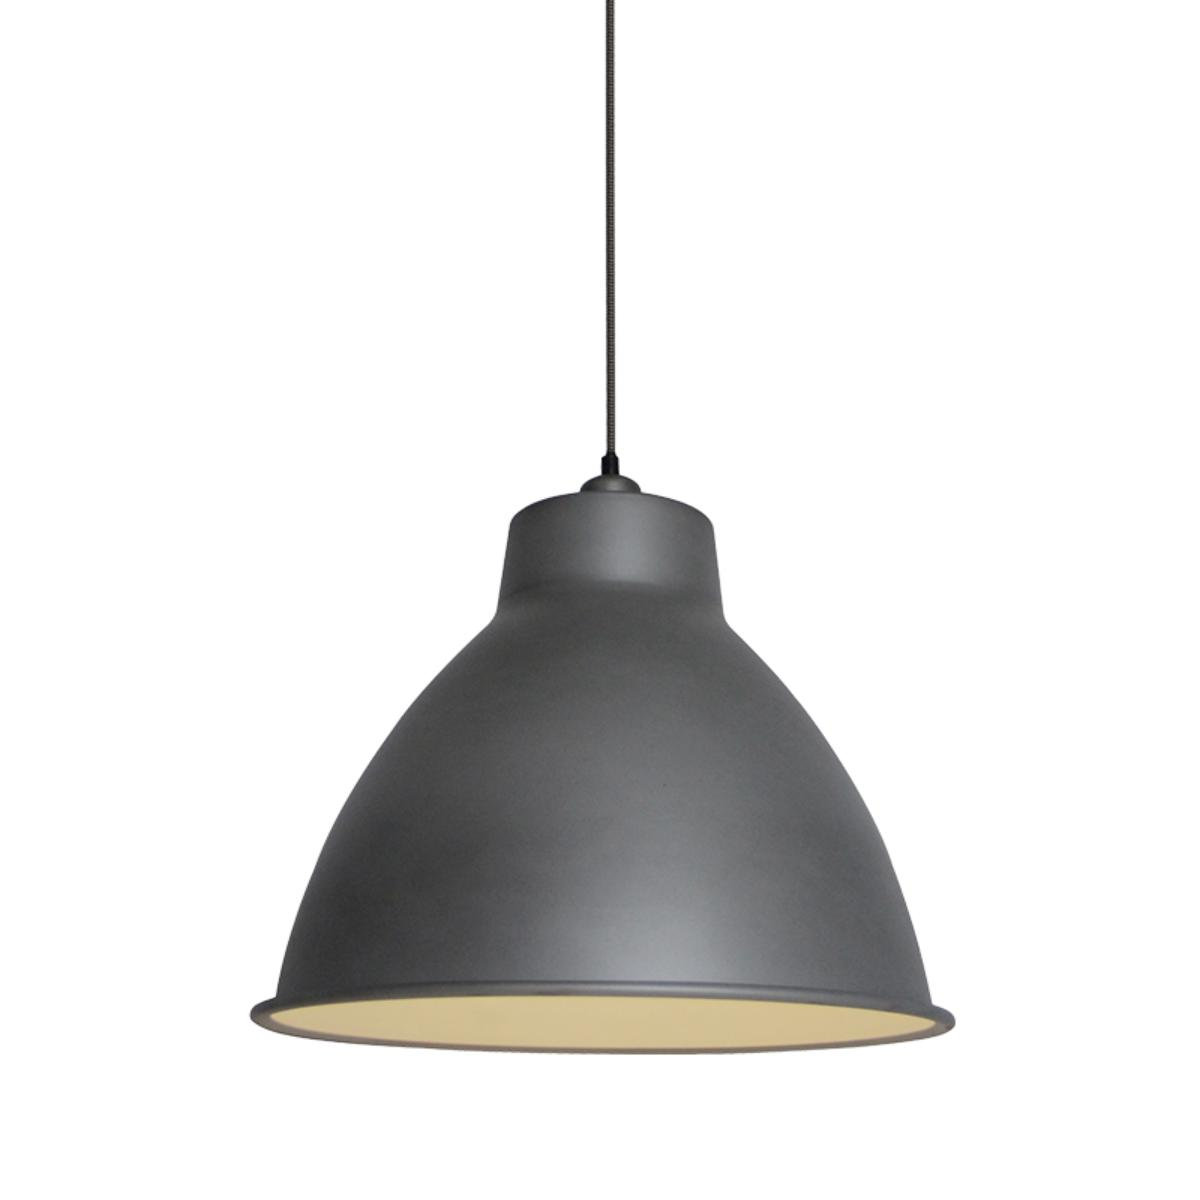 LABEL51 hanglamp 'Dome', kleur Burned Steel Root Catalog